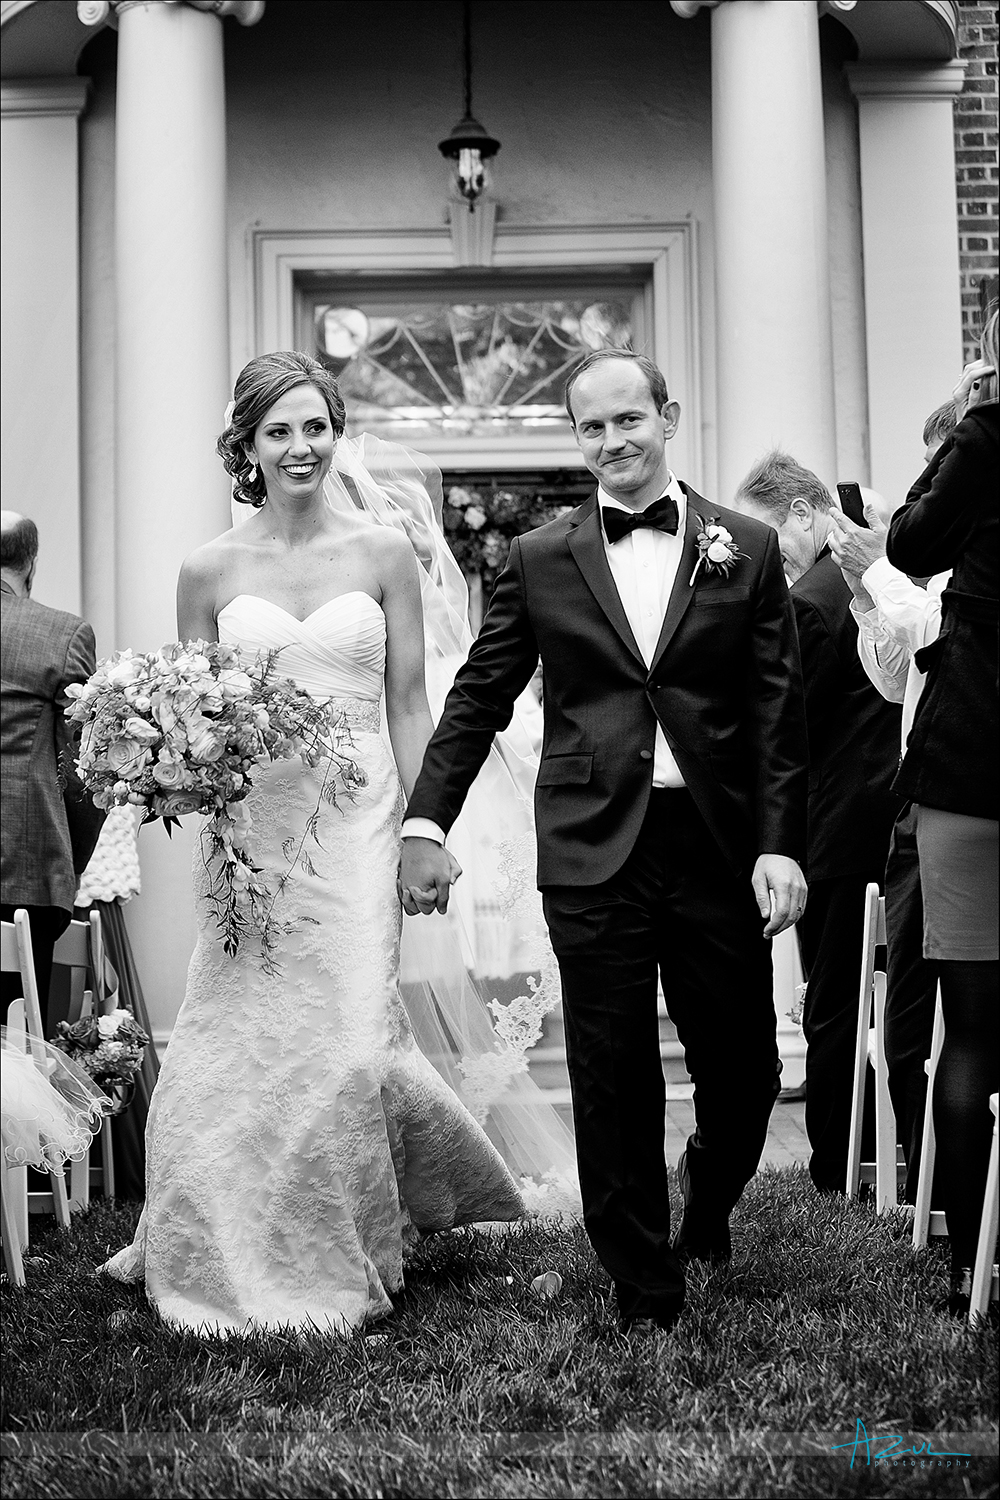 Husband and wife walking down the aisle after wedding in Chapel Hill NC